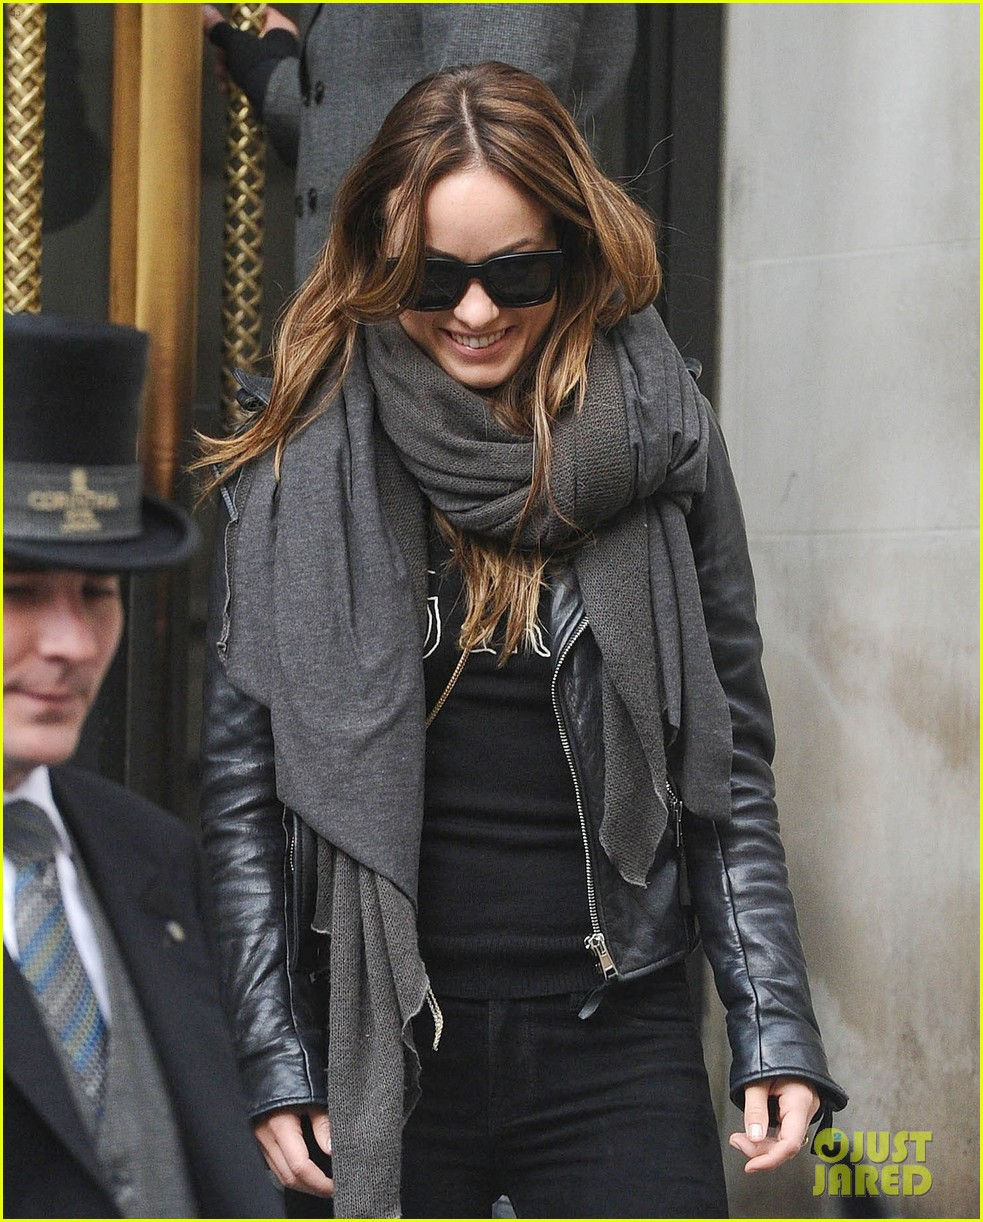 justin theroux olivia wilde shopping london horrible bosses 033240688